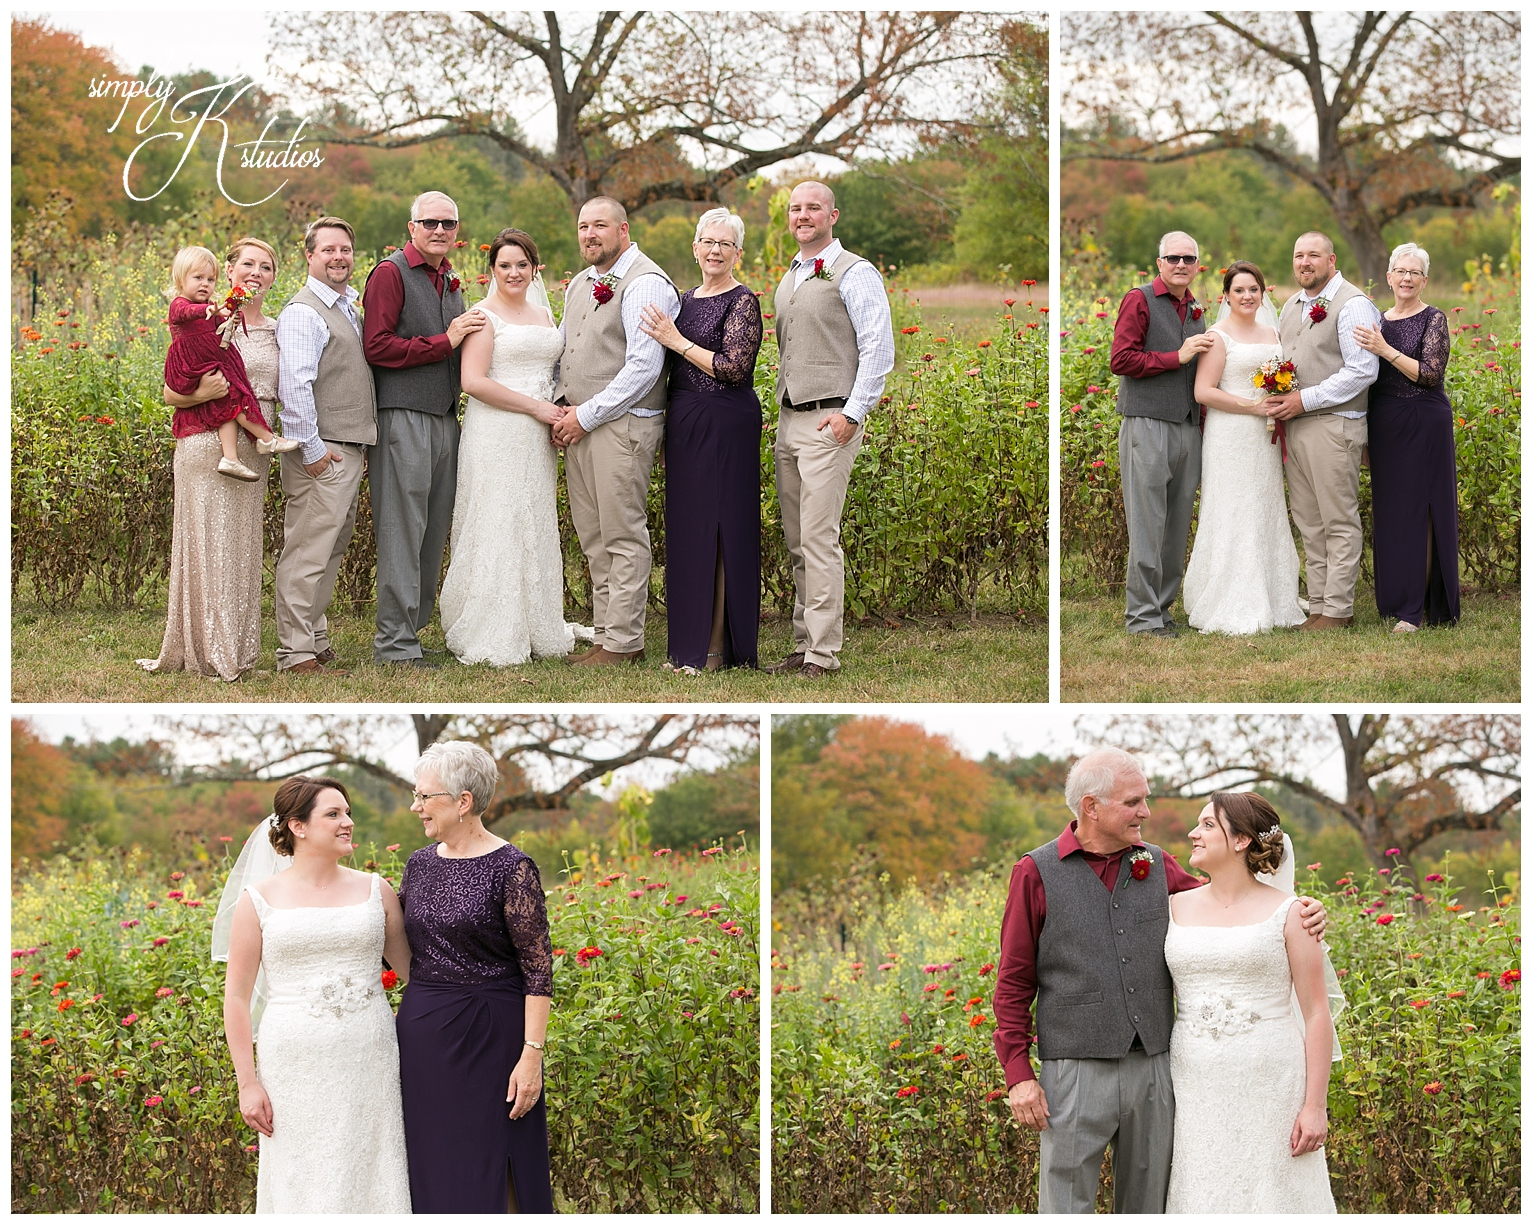 Wedding Photographers in Manchester CT.jpg